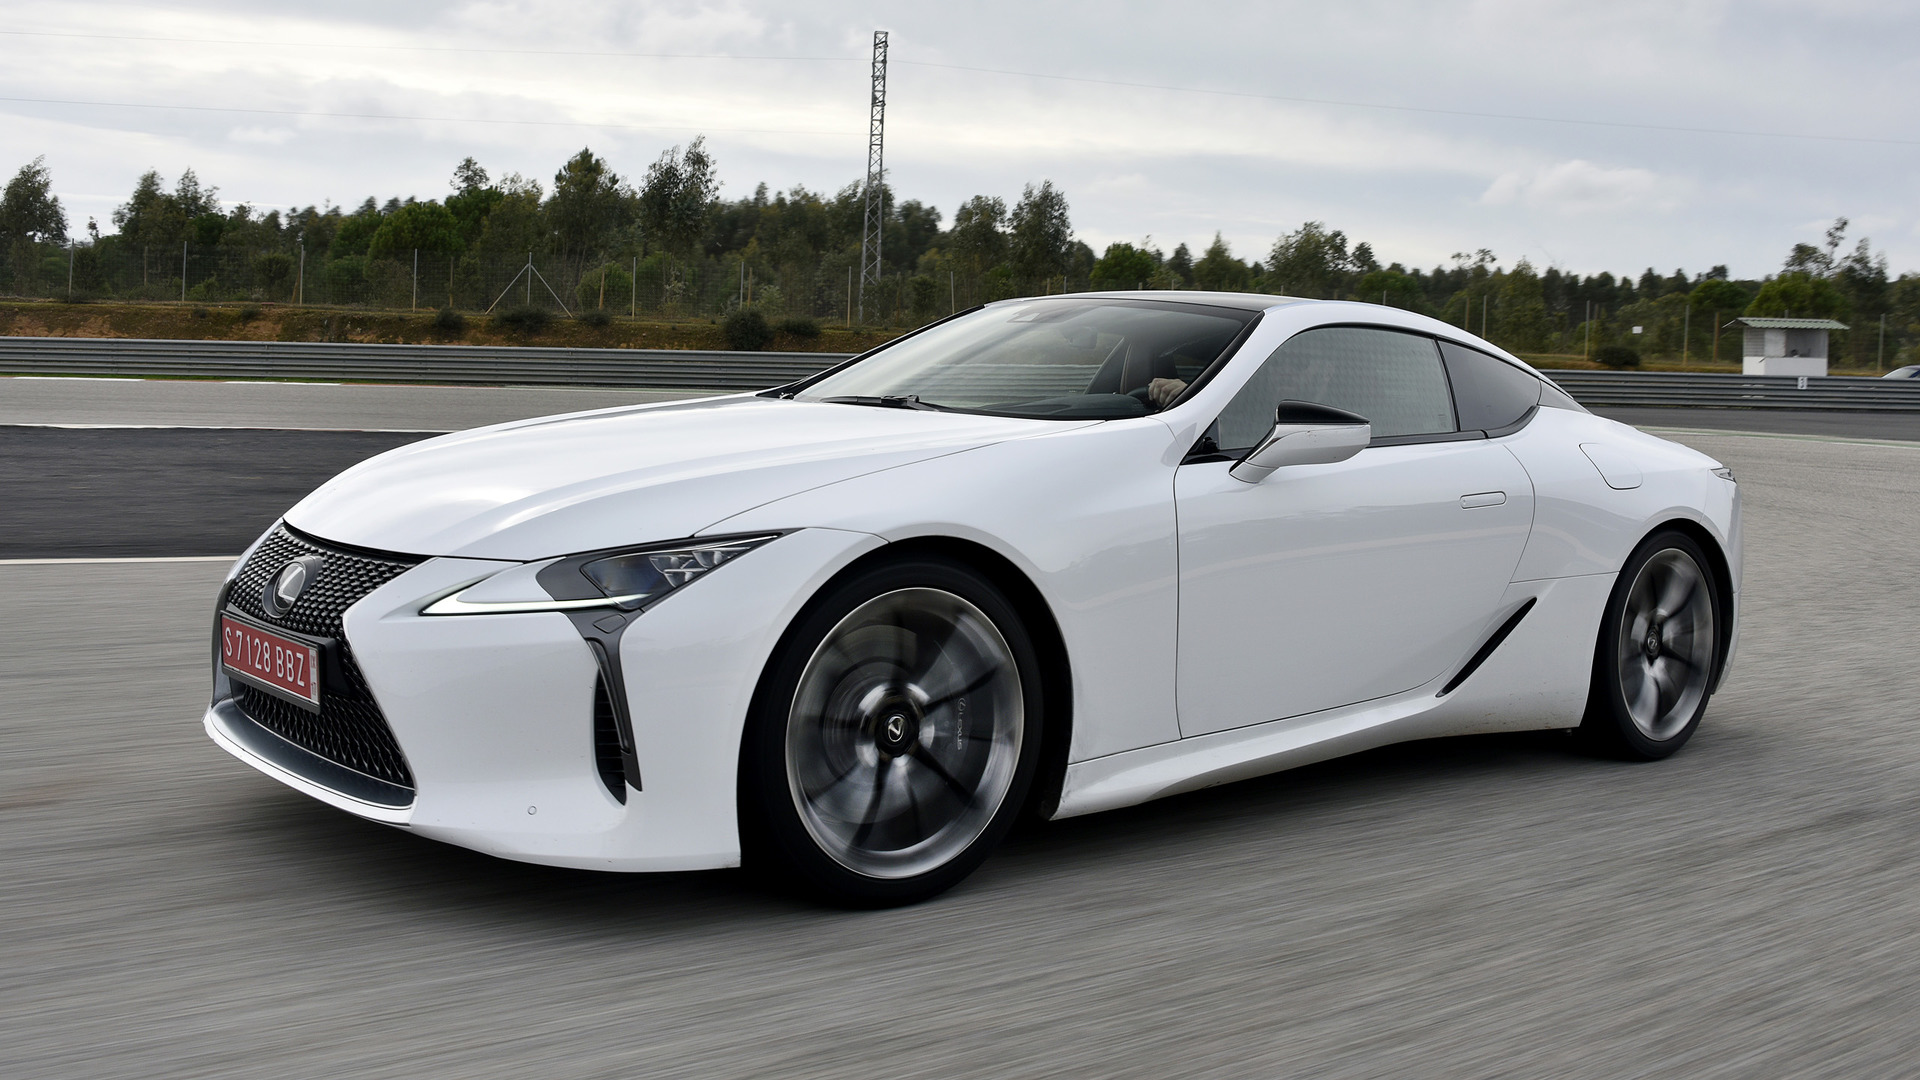 Lexus Lc 500 For Sale >> Lexus LC F allegedly debuts with 600 hp at Tokyo Motor Show